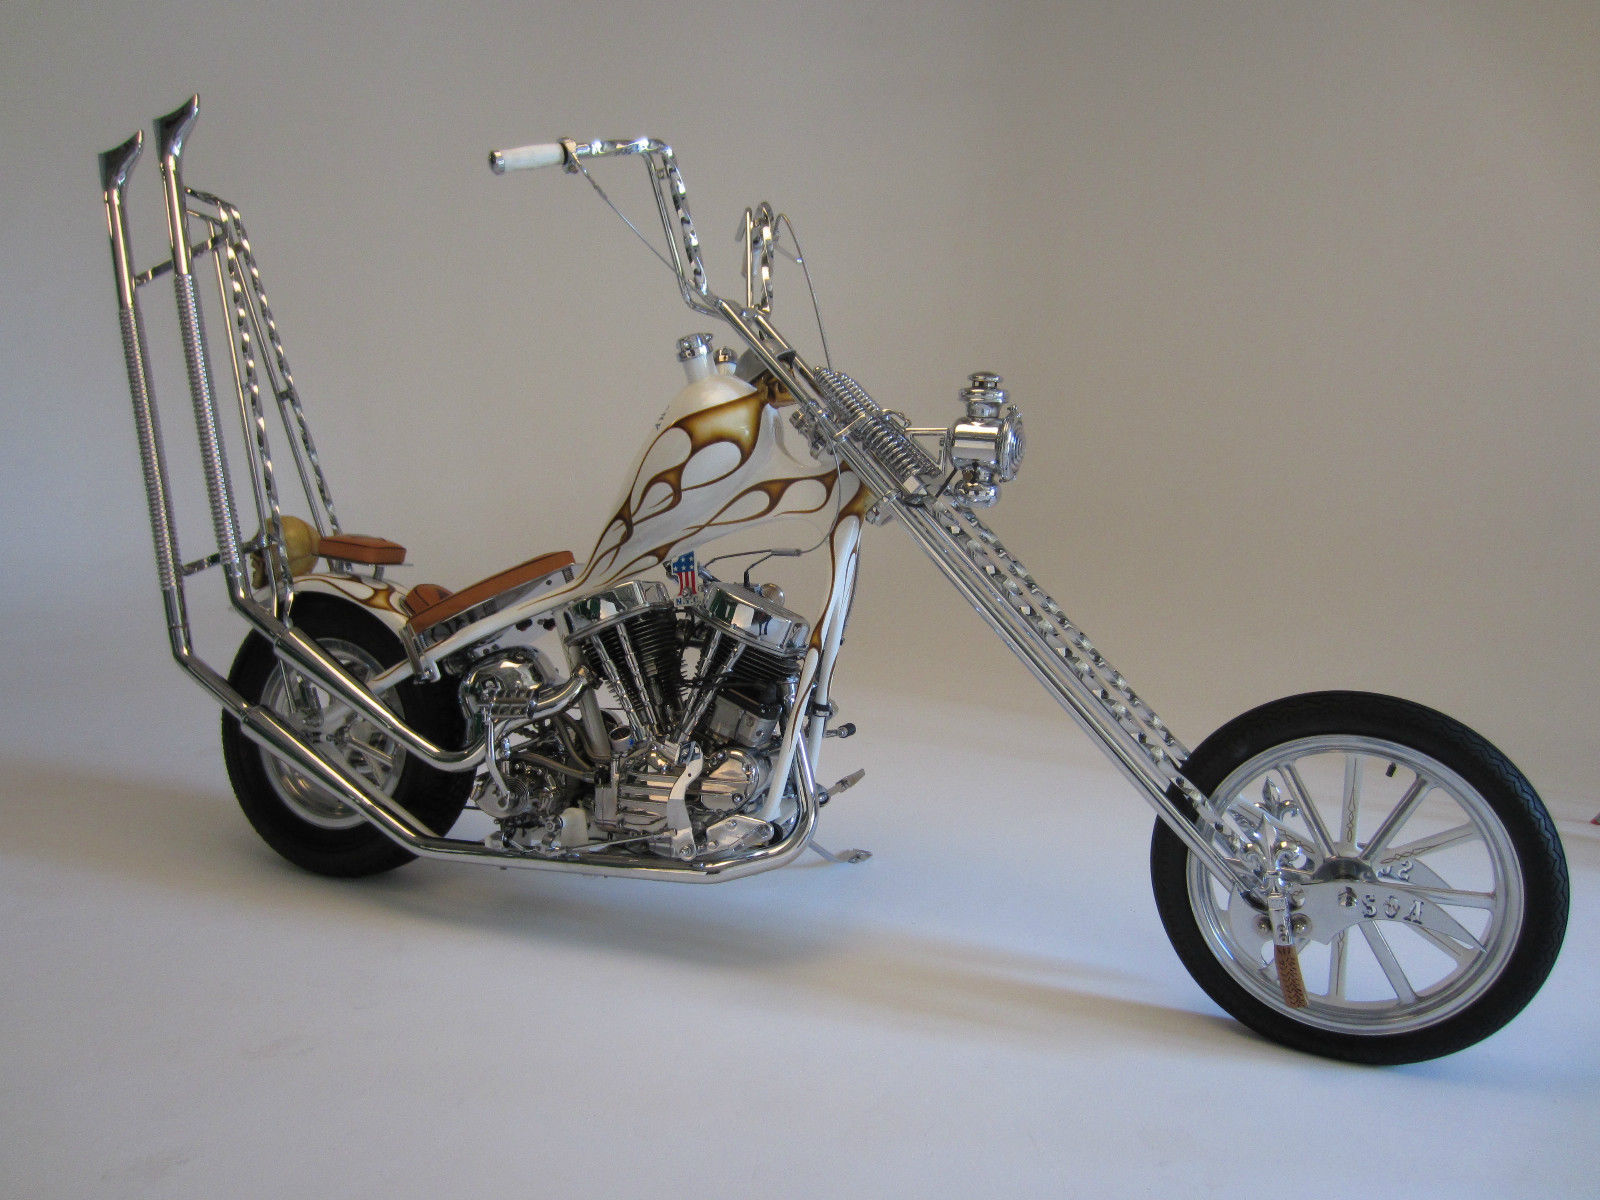 harley davidson panhead chuck zito sons of anarchy beast. Black Bedroom Furniture Sets. Home Design Ideas